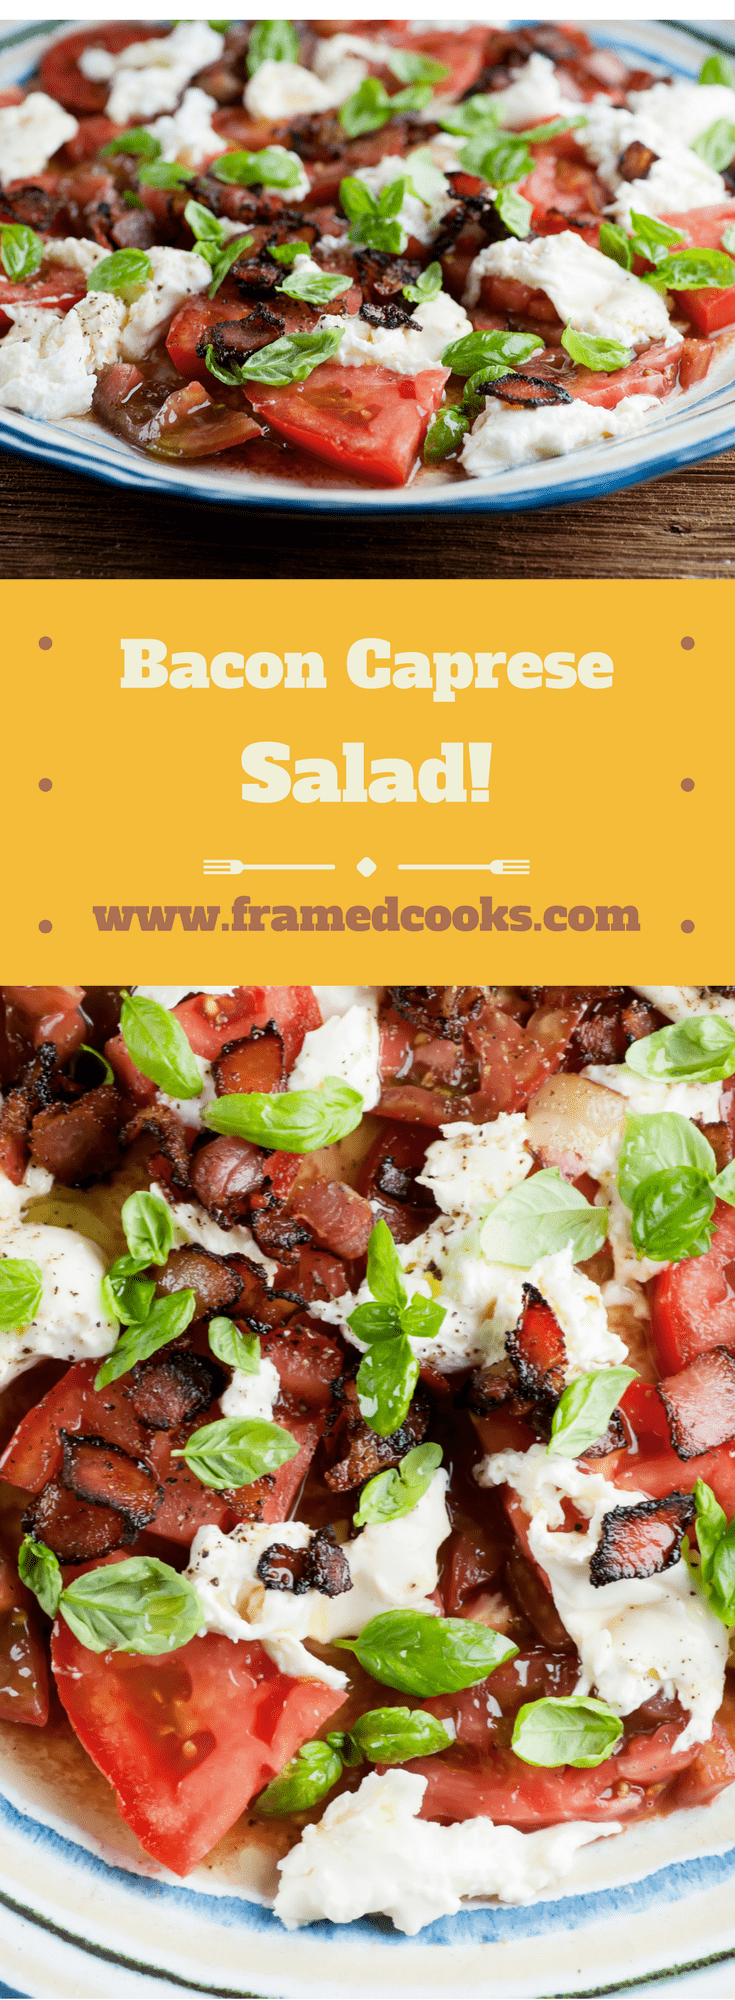 Grab some bacon, tomatoes, cheese and basil and you are all set to make the wonder that is this summertime bacon caprese salad recipe!